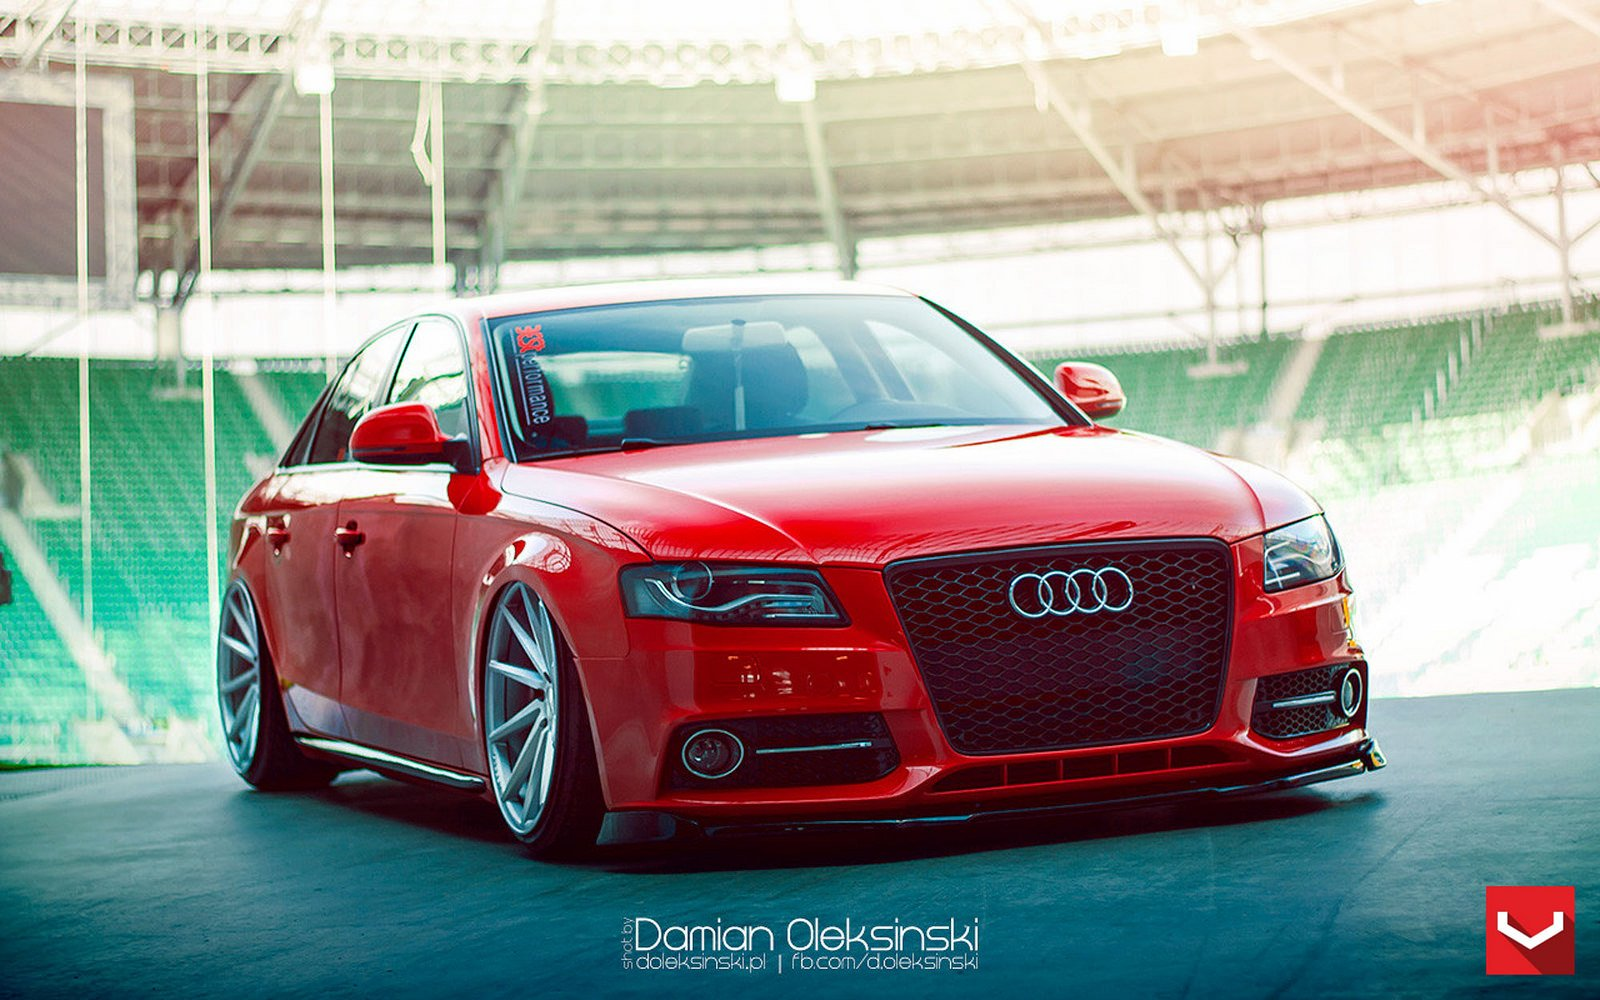 Audi audi a4 coup : Audi-a4 red vossen wheels tuning coupe cars wallpaper | 1600x1000 ...